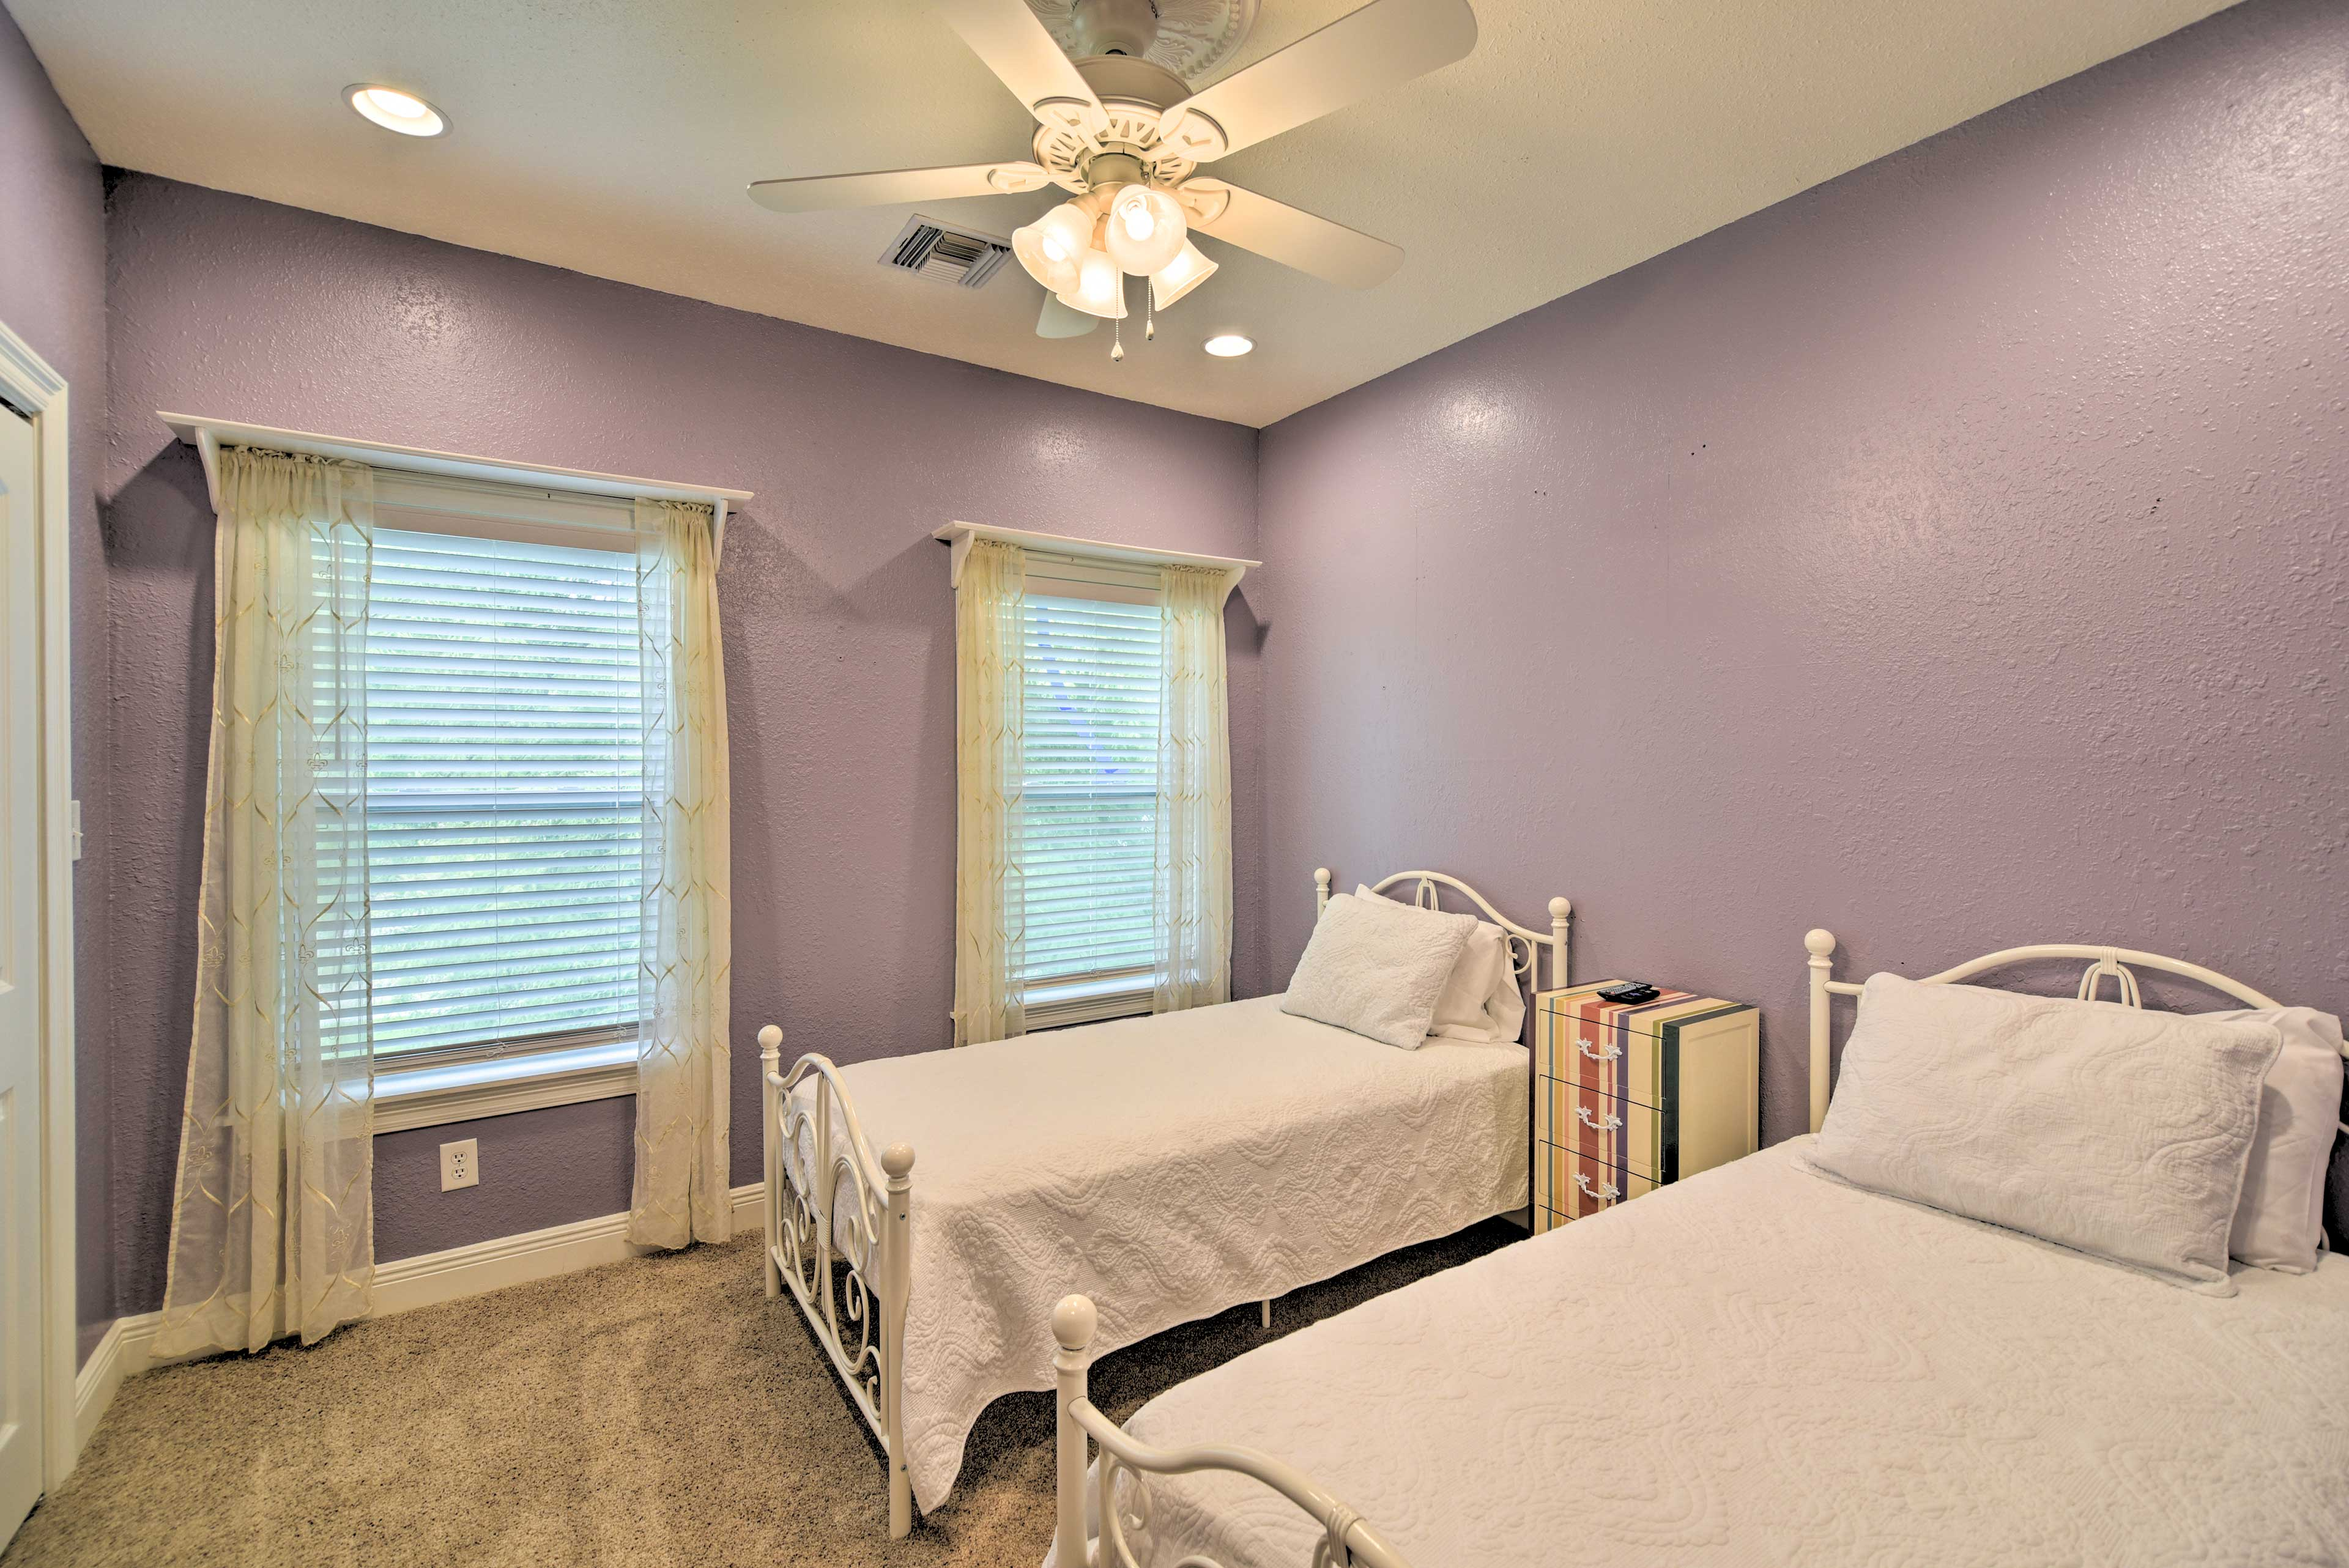 The kids will love the twin beds in the second bedroom.